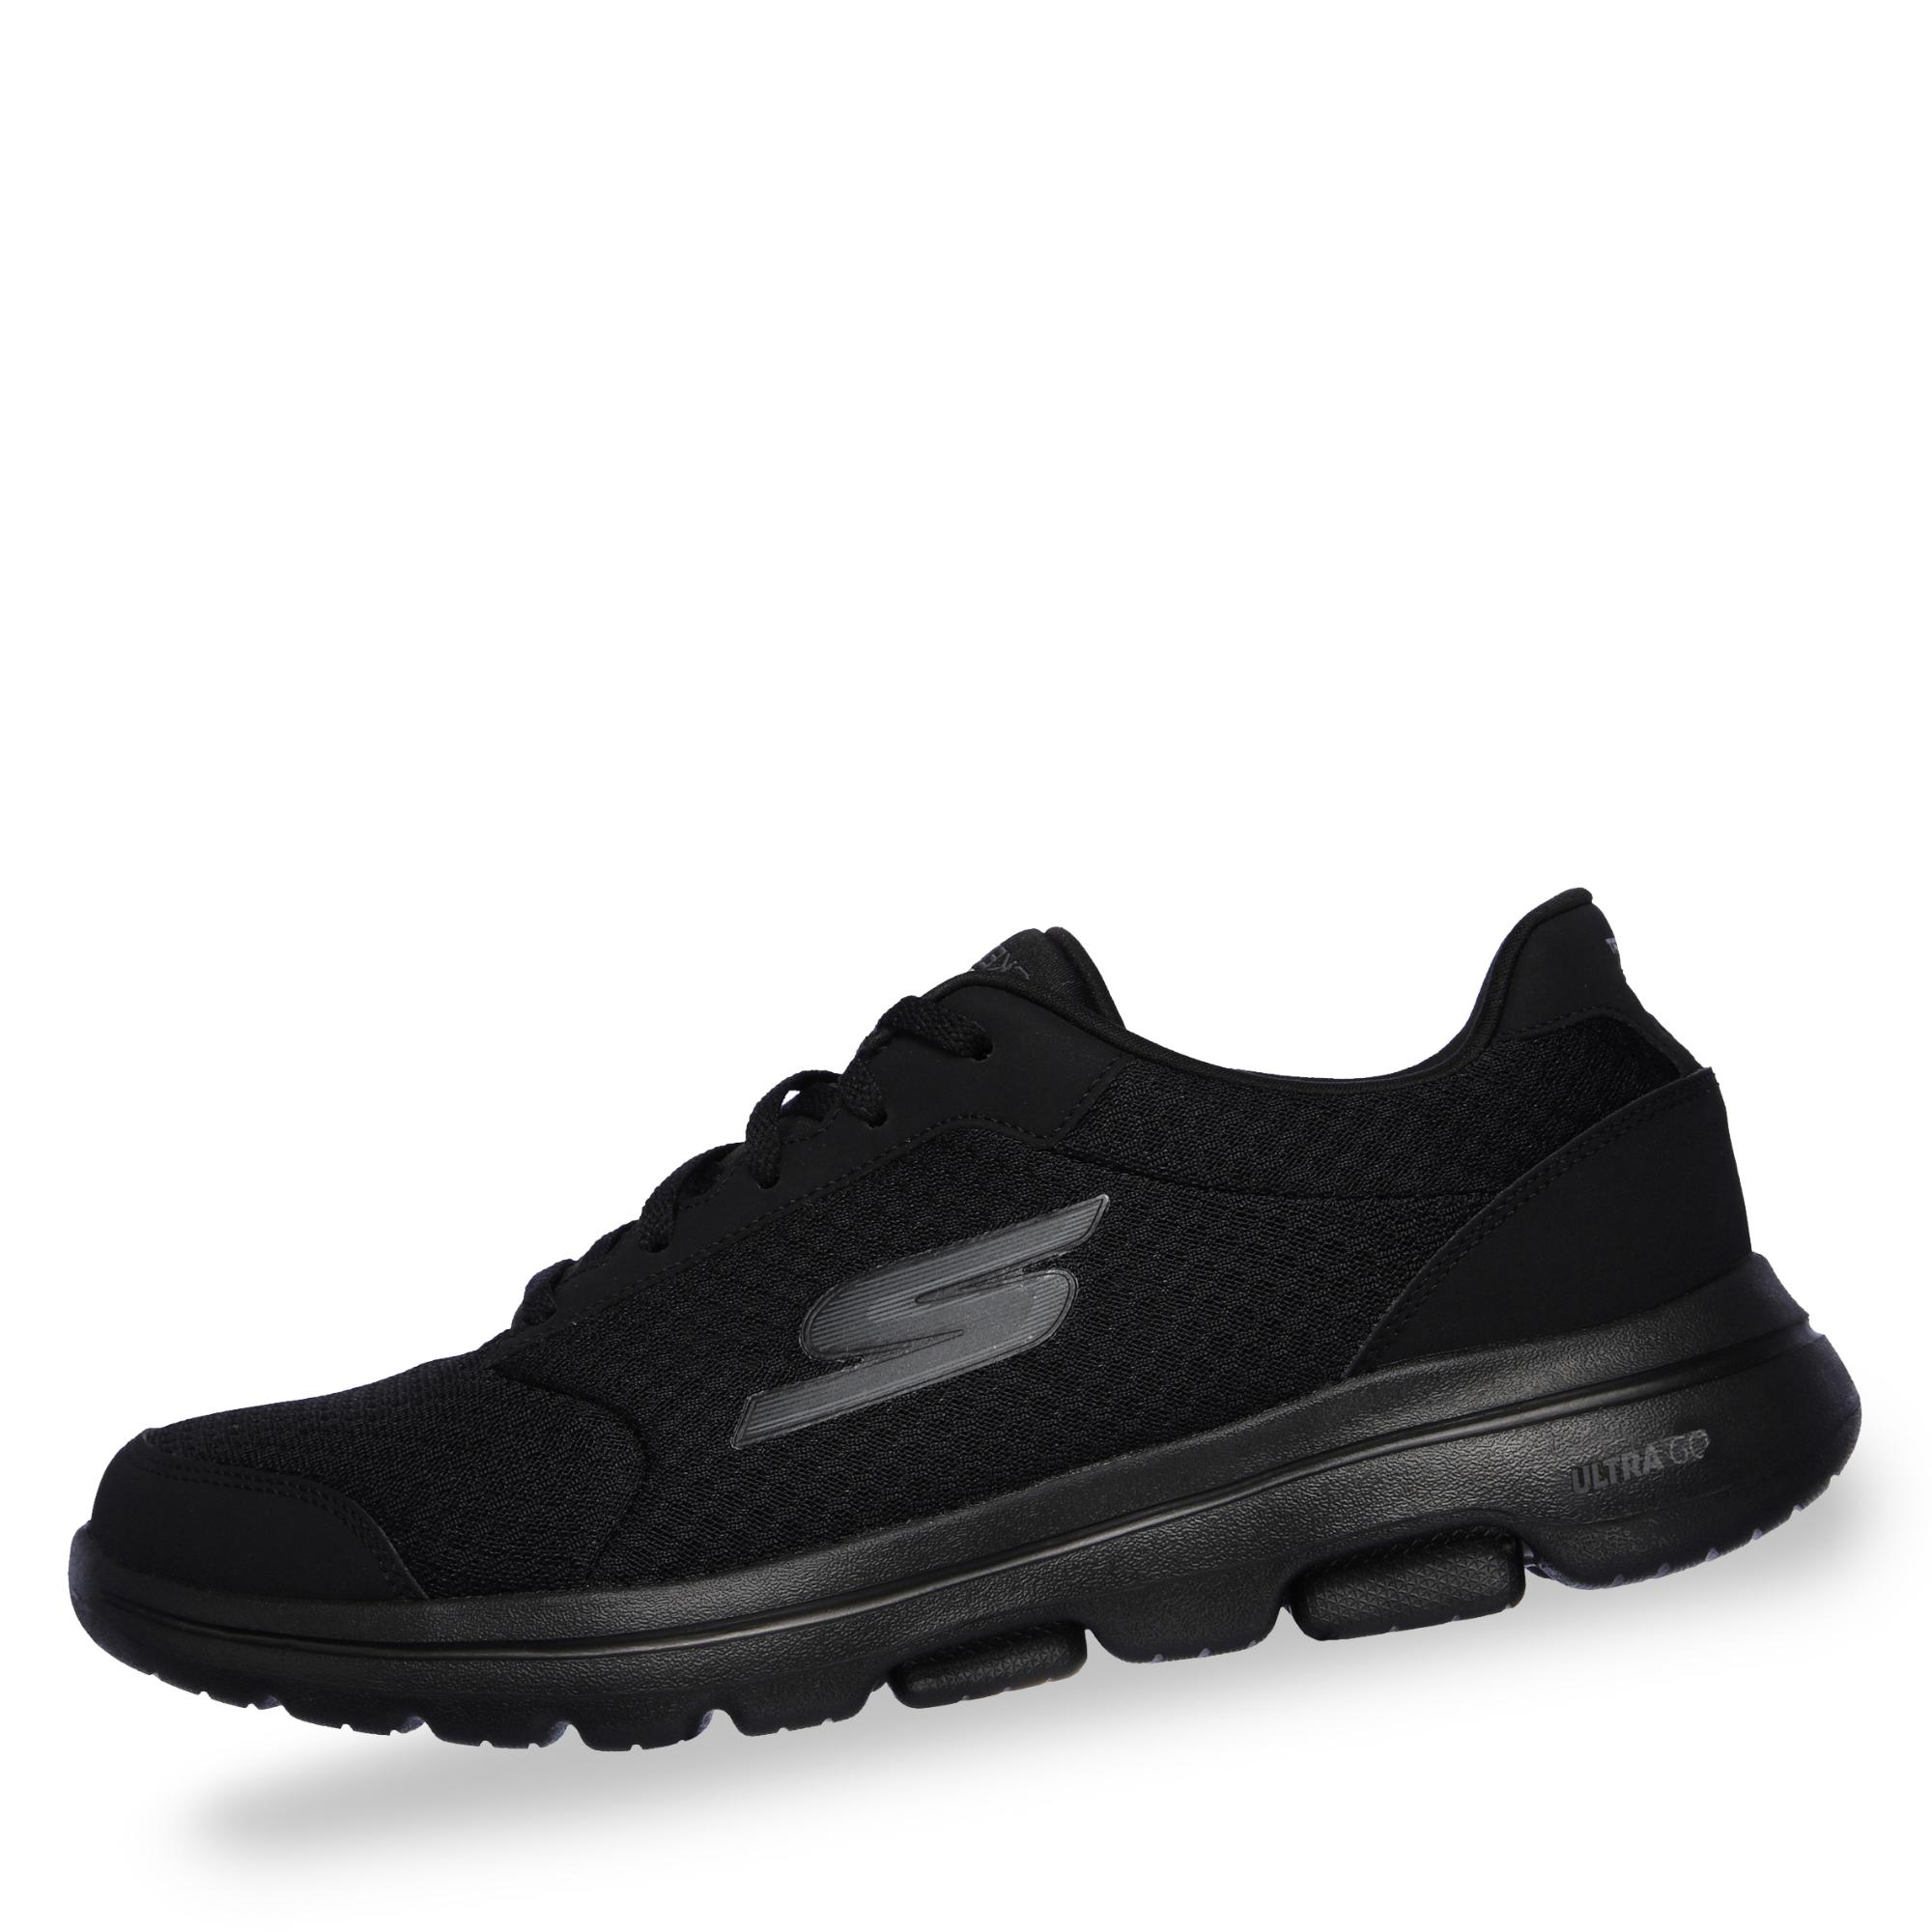 reputable site 3d36c 0766e Skechers GO WALK 5 - QUALIFY Sneaker - schwarz | Markenschuhe